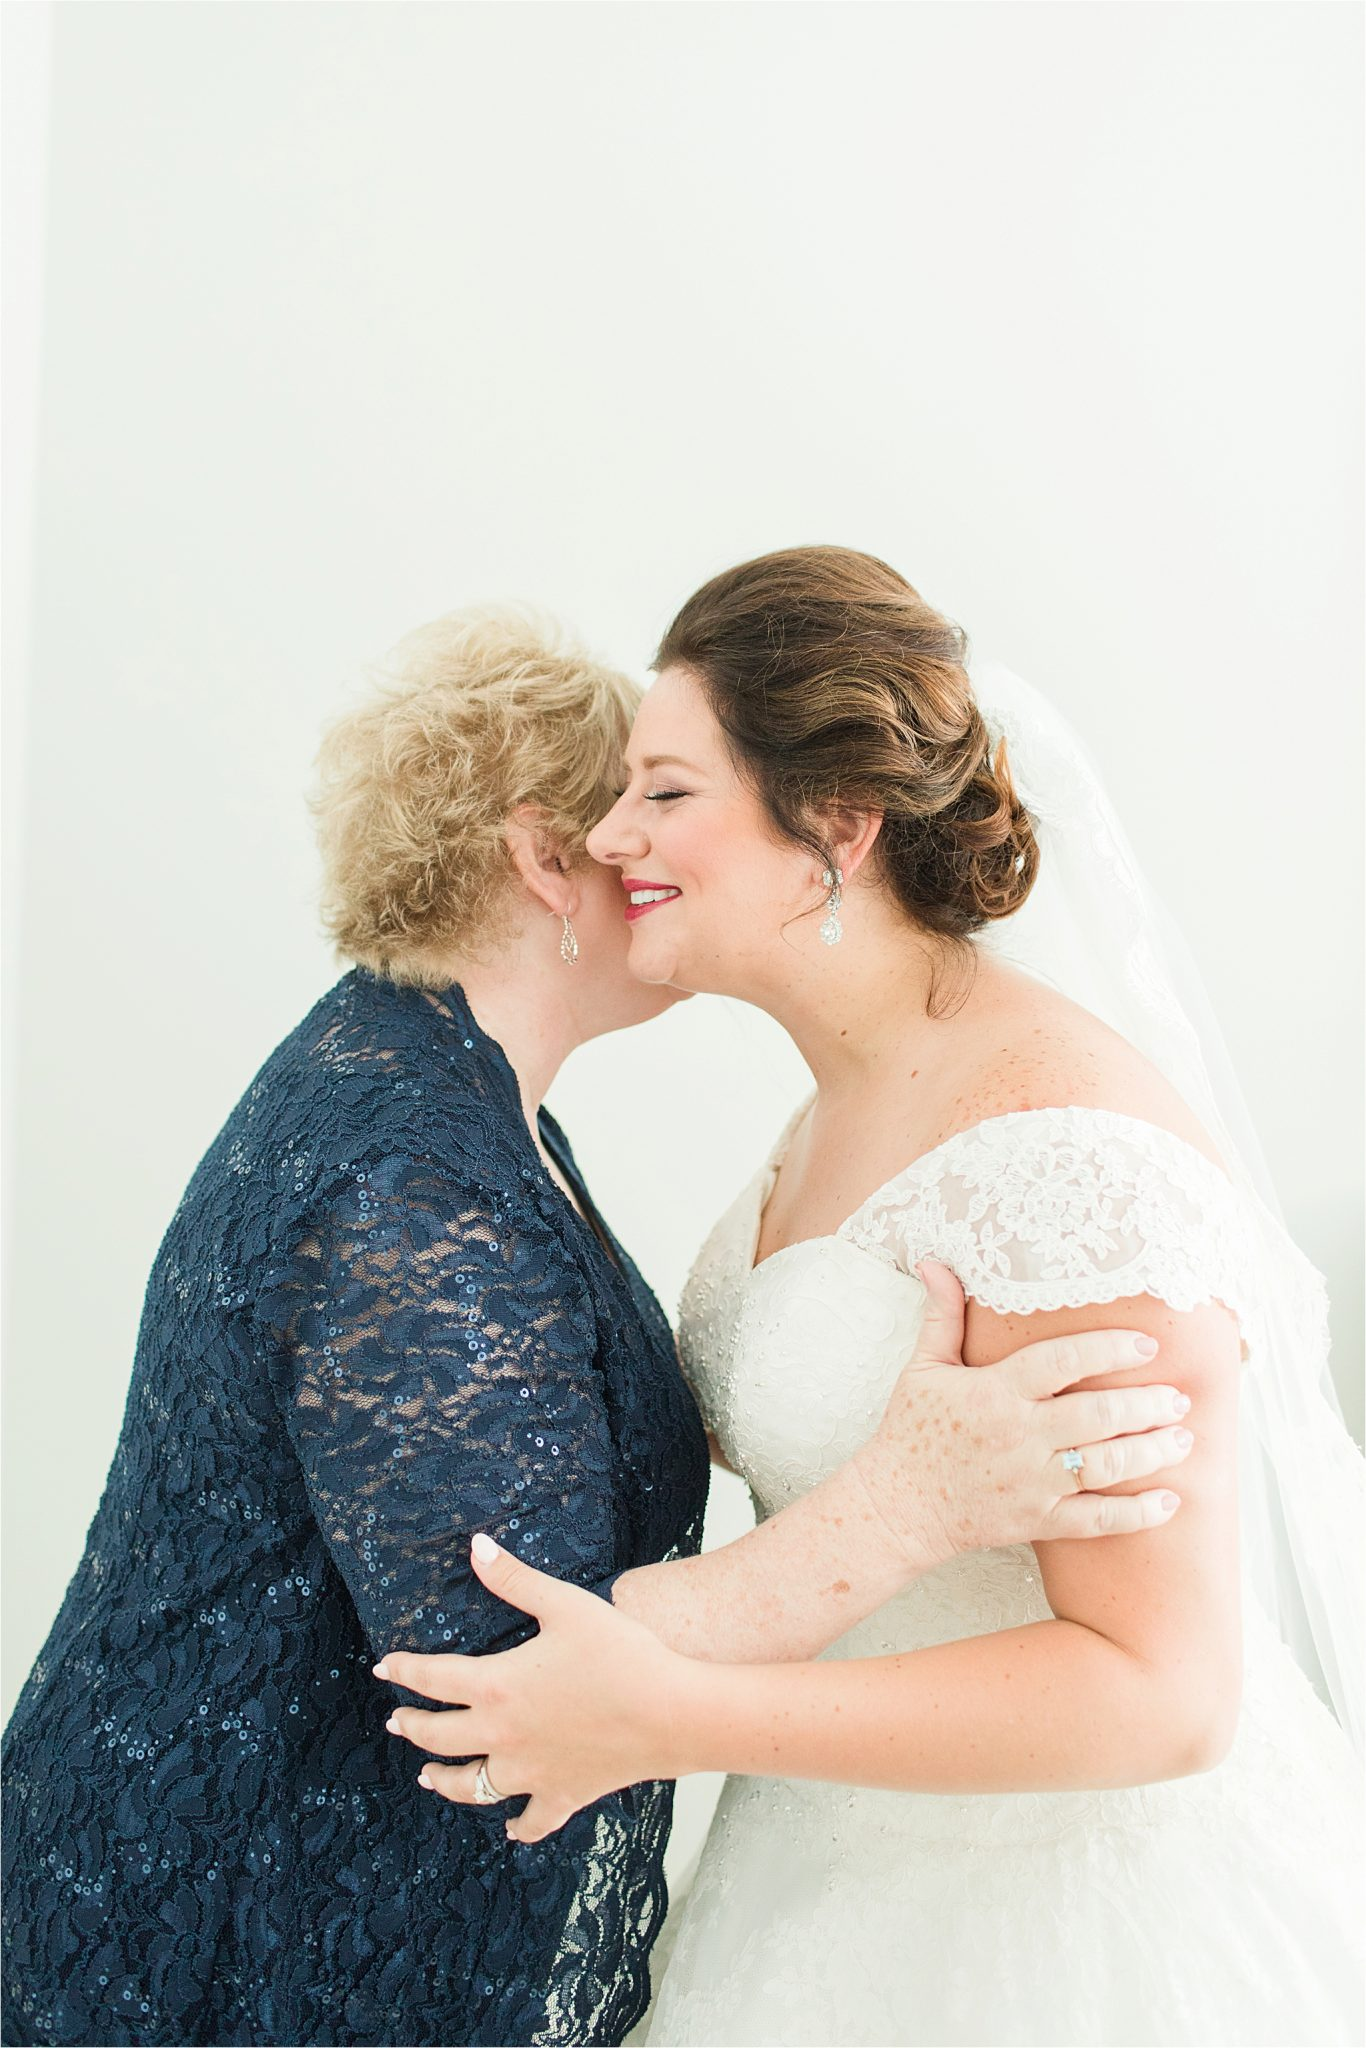 Pastel Themed Wedding-The Chapel at the Waters-Montgomery Alabama Photographer-Miles & Meredyth-Blue Themed Wedding-Wedding Hair-Bride Up-do-Wedding Makeup